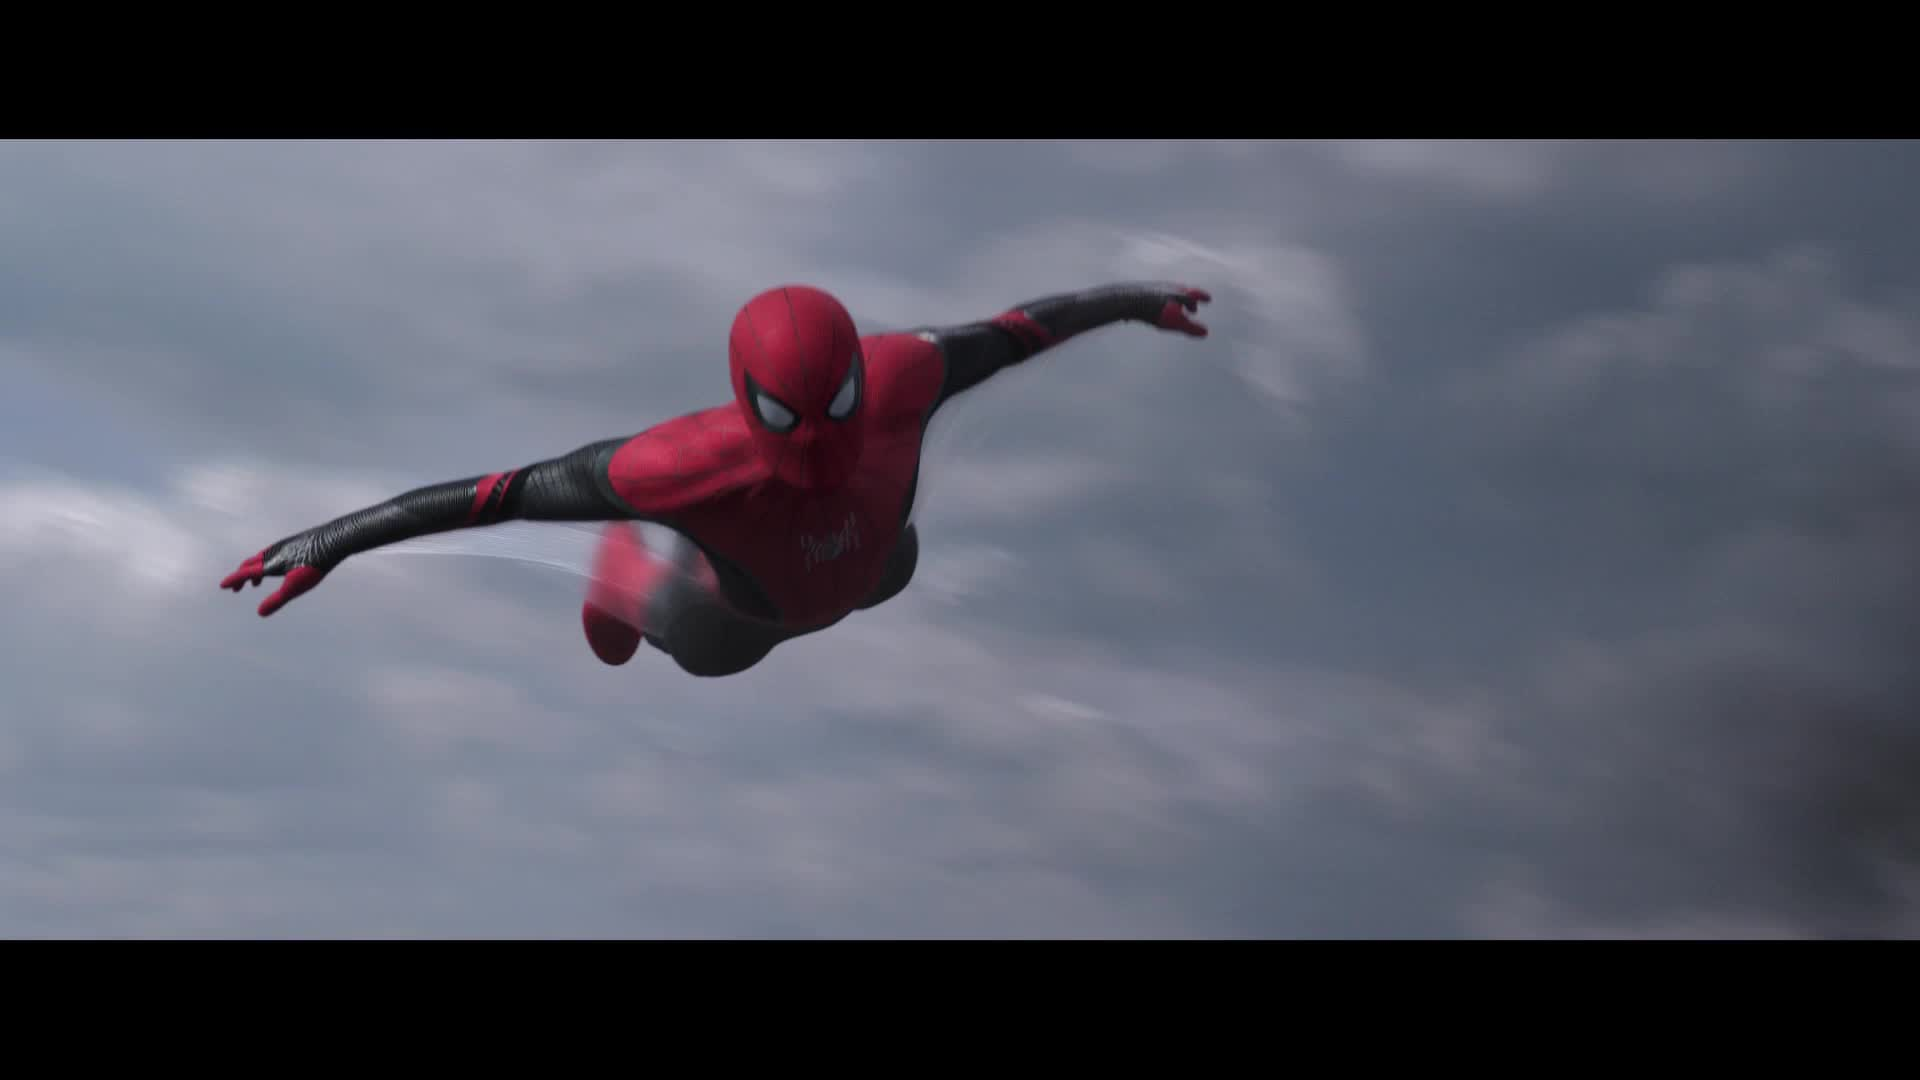 Trailer, Sony, Kino, Kinofilm, Teaser, Marvel, Sony Pictures, Spider-Man, Sony Pictures Entertainment, Spider-Man: Far From Home, Far From Home